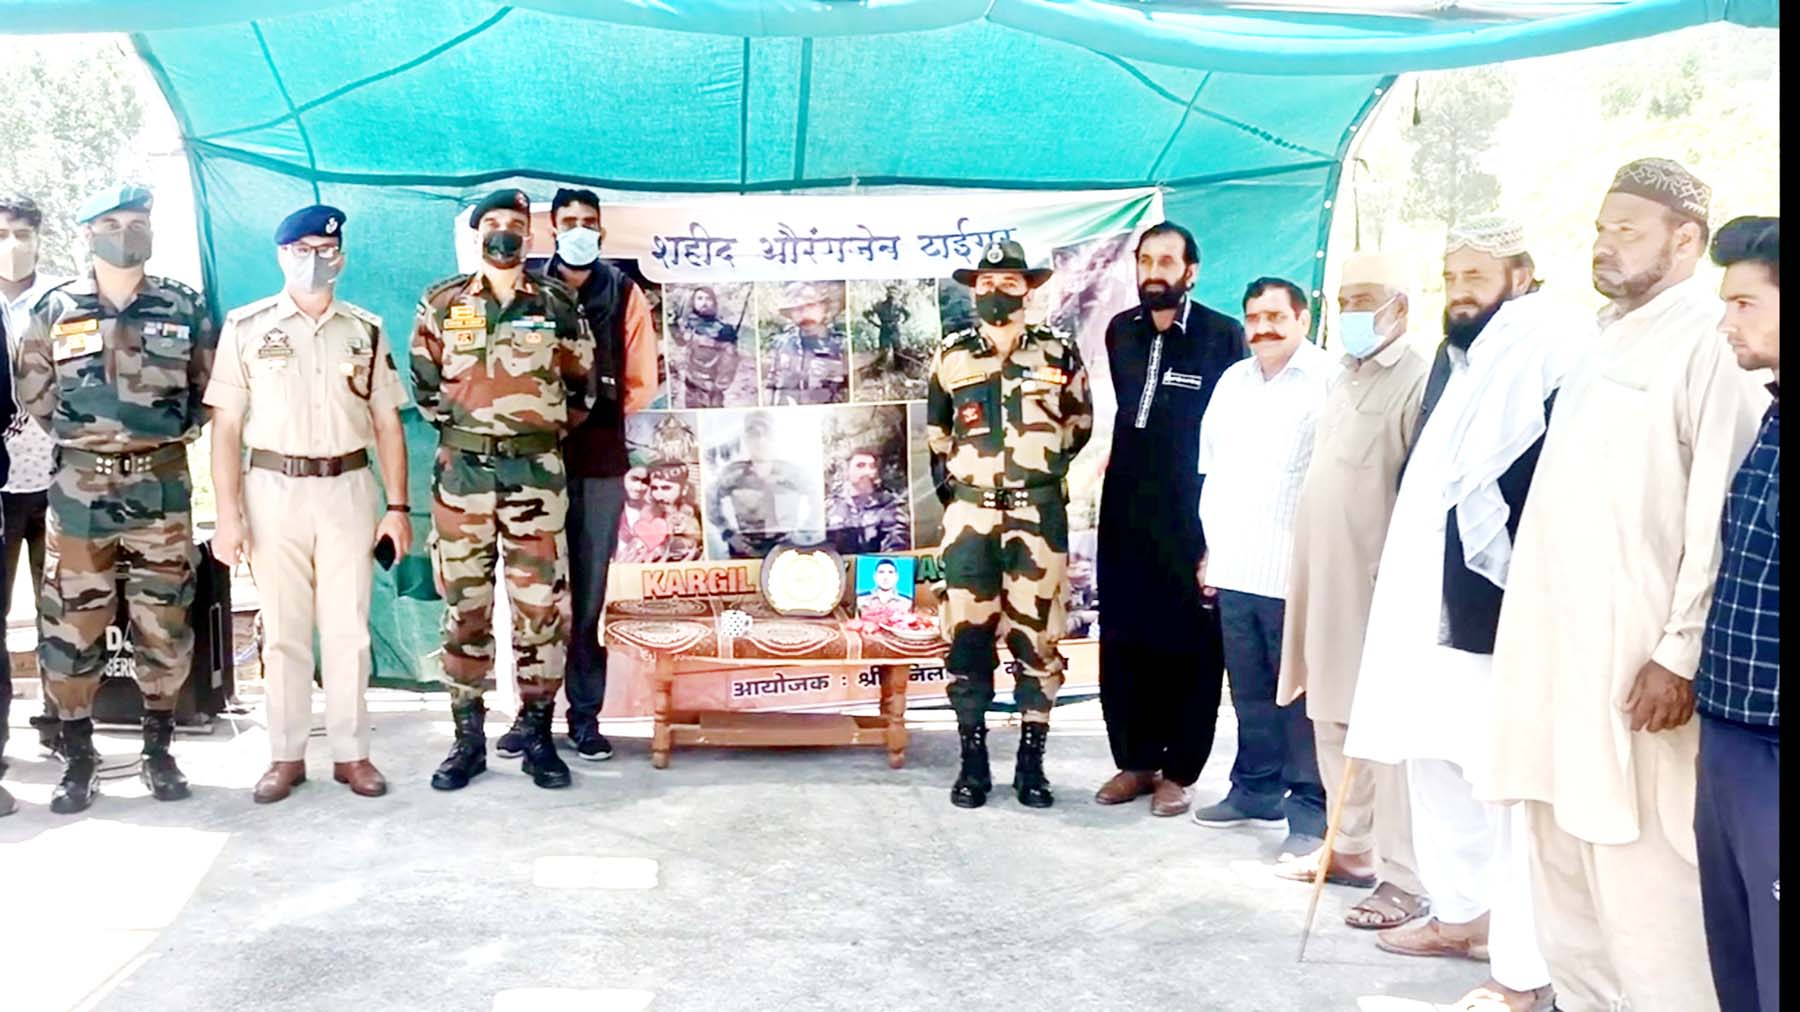 Tributes being paid to martyr Aurangzeb during a function at Salani village in Mendhar. -Excelsior/Rahi Kapoor